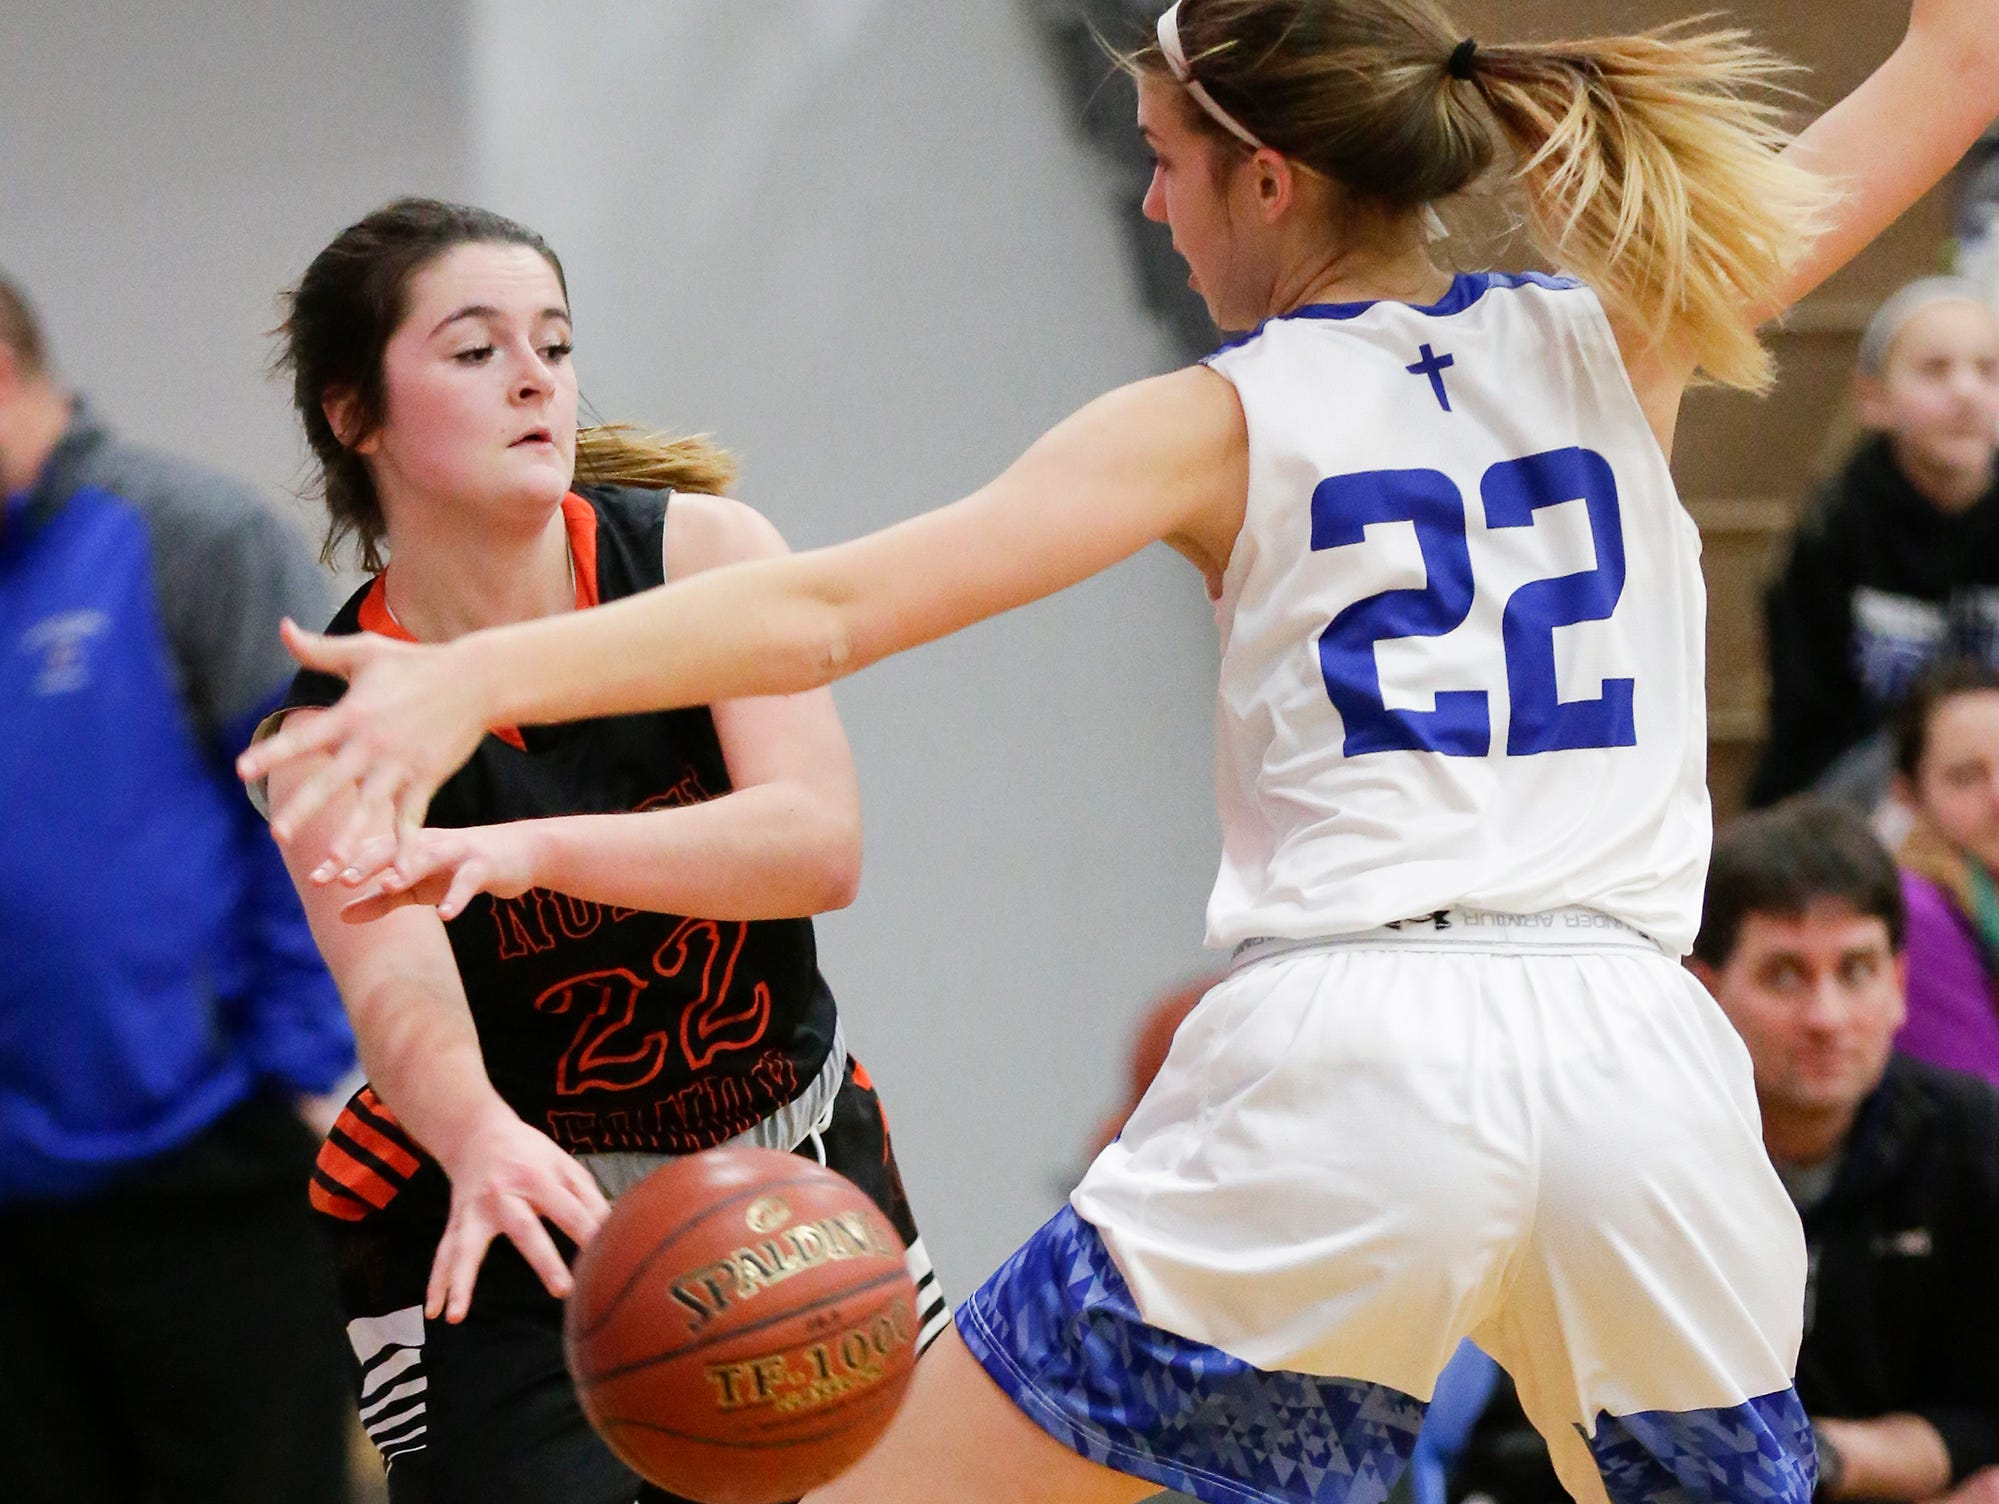 North Fond du Lac High School girls basketball's Lilly Sadoff passes the ball past Winnebago Lutheran Academy's Kaylee Frey January 10, 2019 during their game in Fond du Lac. Doug Raflik/USA TODAY NETWORK-Wisconsin